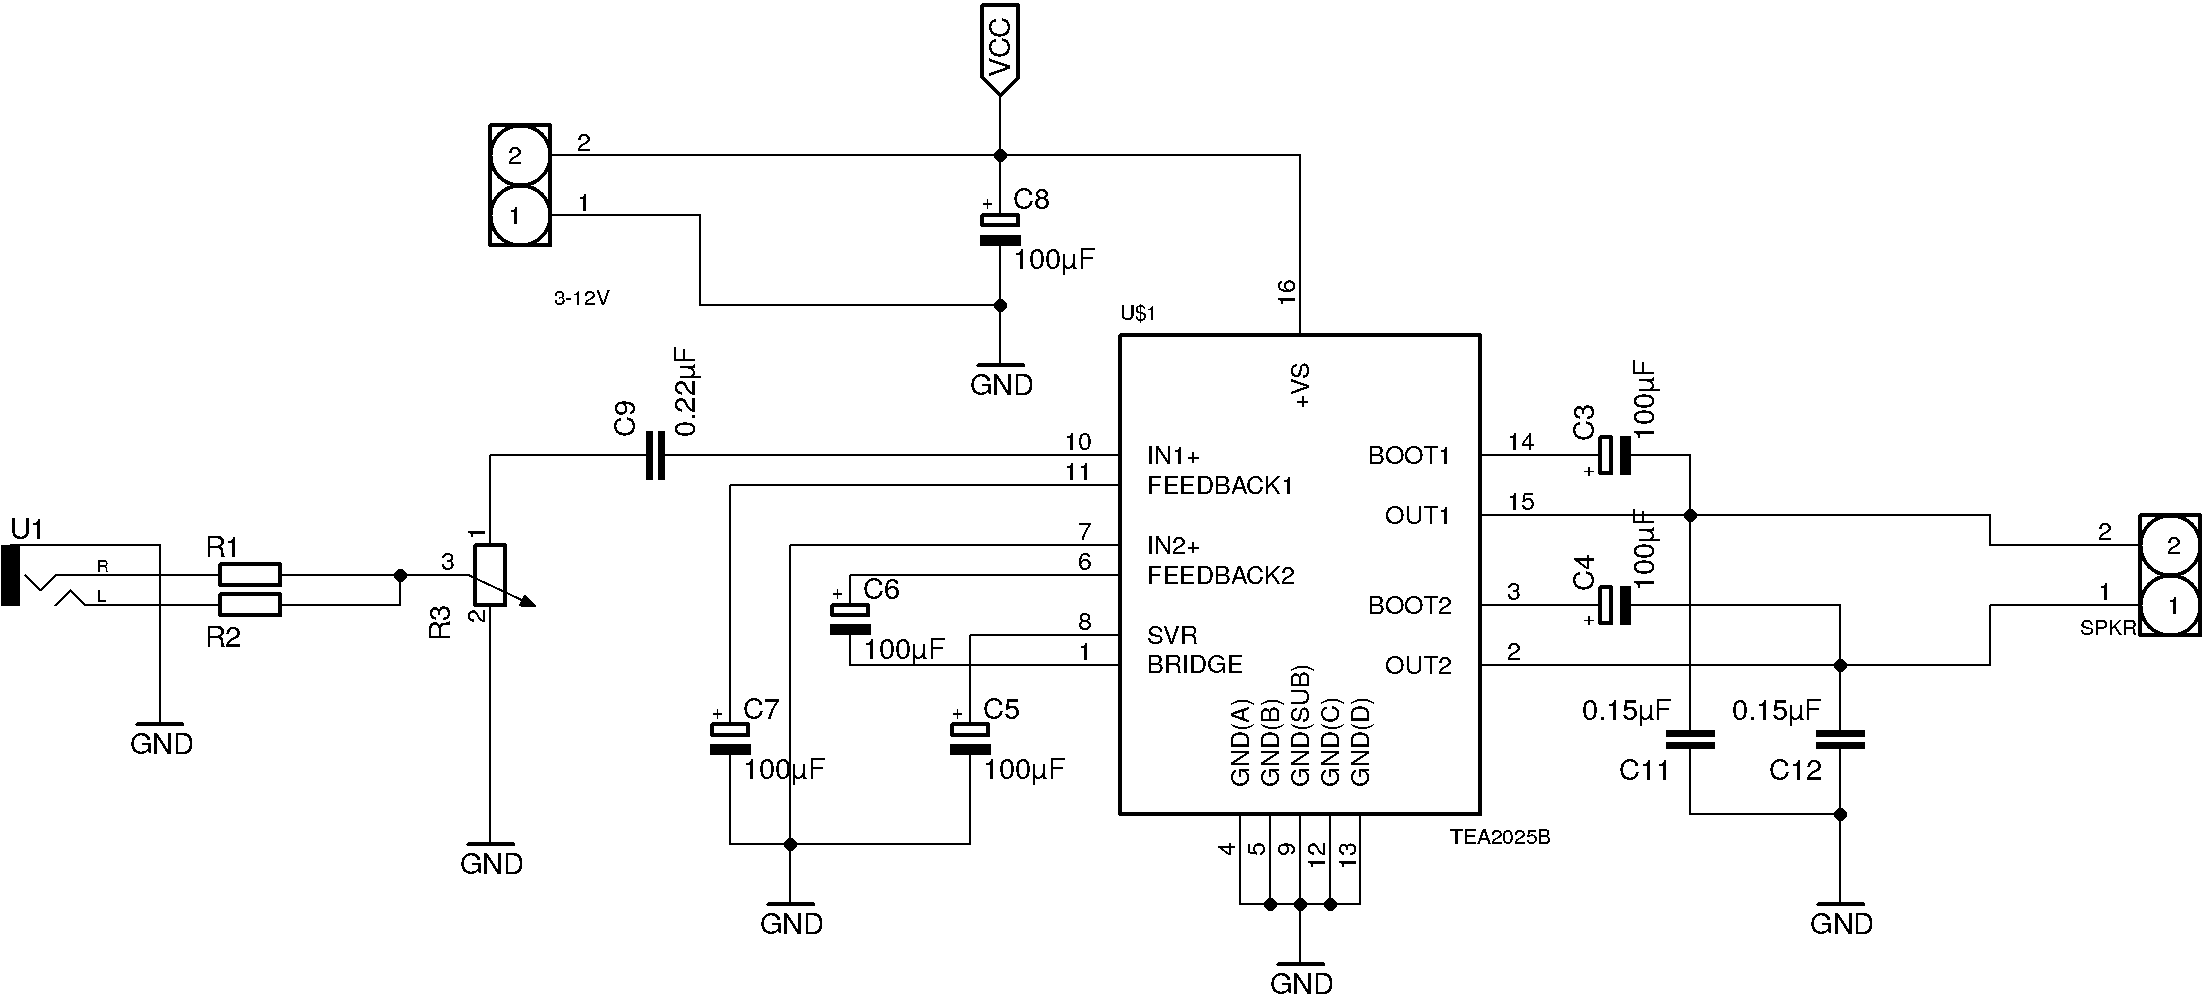 12v Power Schematic Wiring Library 5000w Sg3524 Dc Ac Inverter Circuit Electronics Projects Circuits Mono Amplifier Diagram